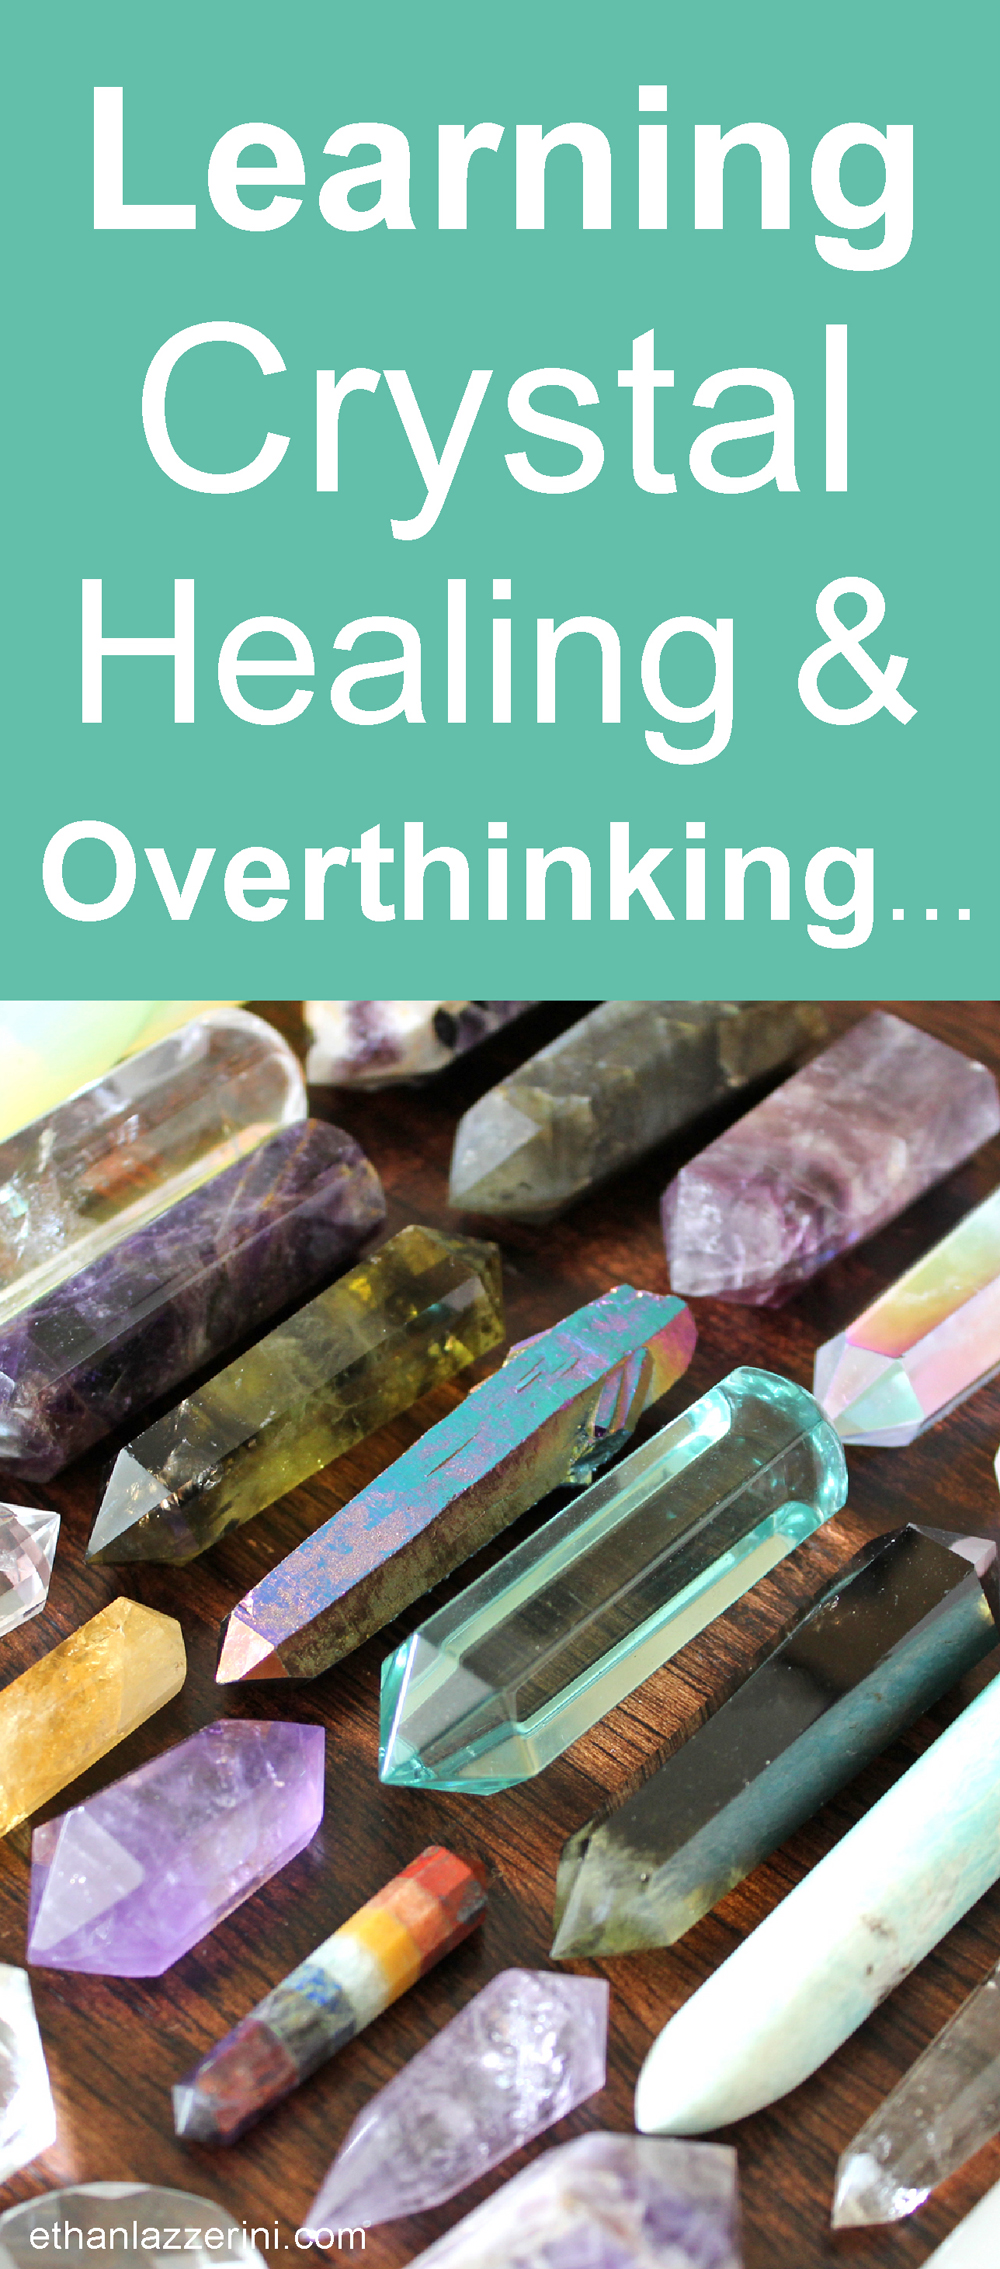 Learning crystal healing